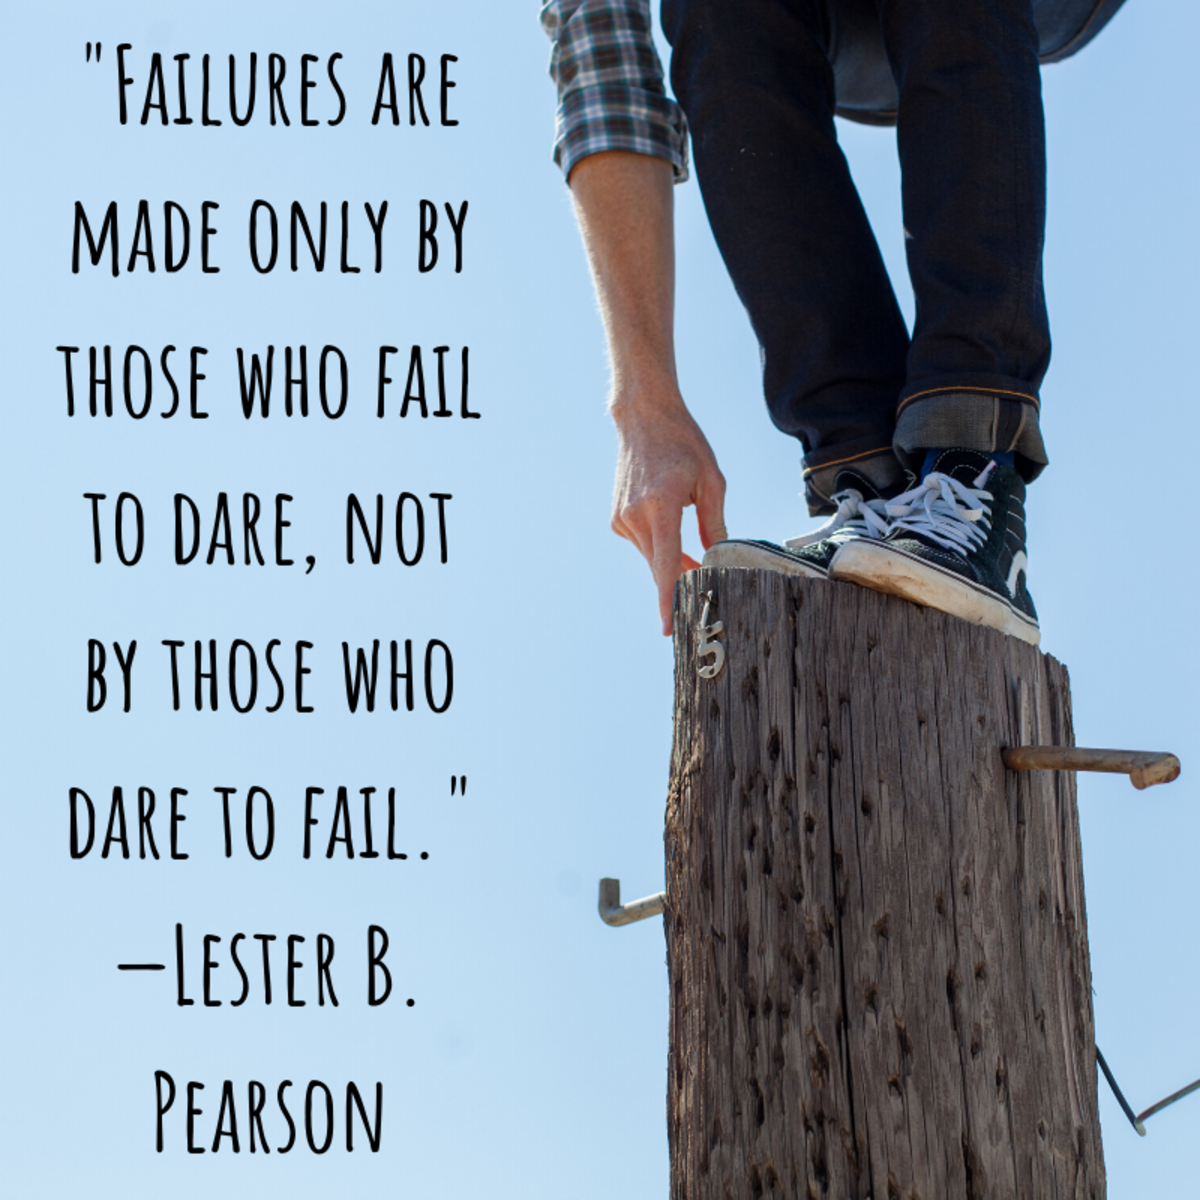 """Failures are made only by those who fail to dare, not by those who dare to fail."" —Lester B. Pearson"